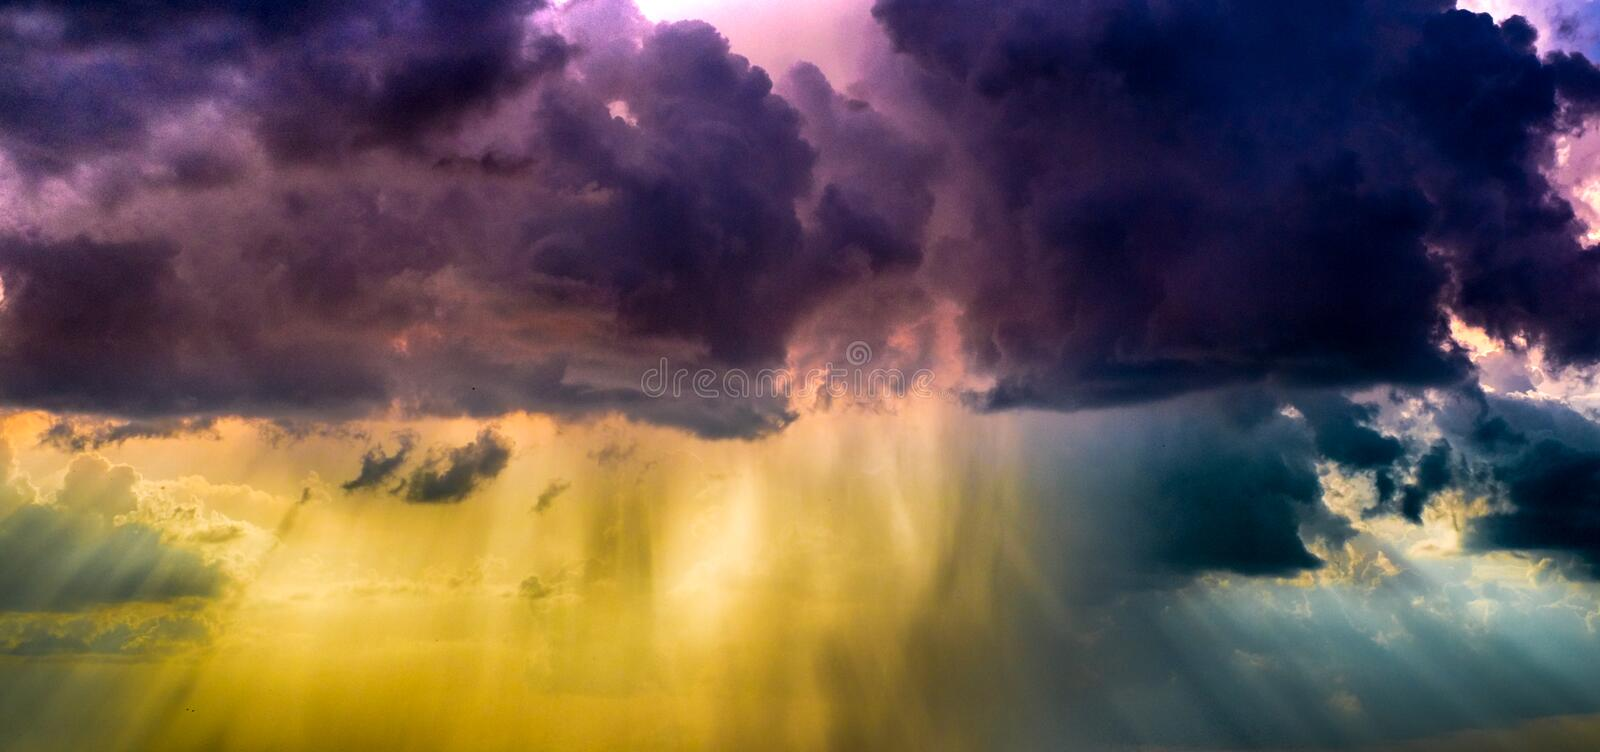 Thunder storm with heavy rain royalty free stock images